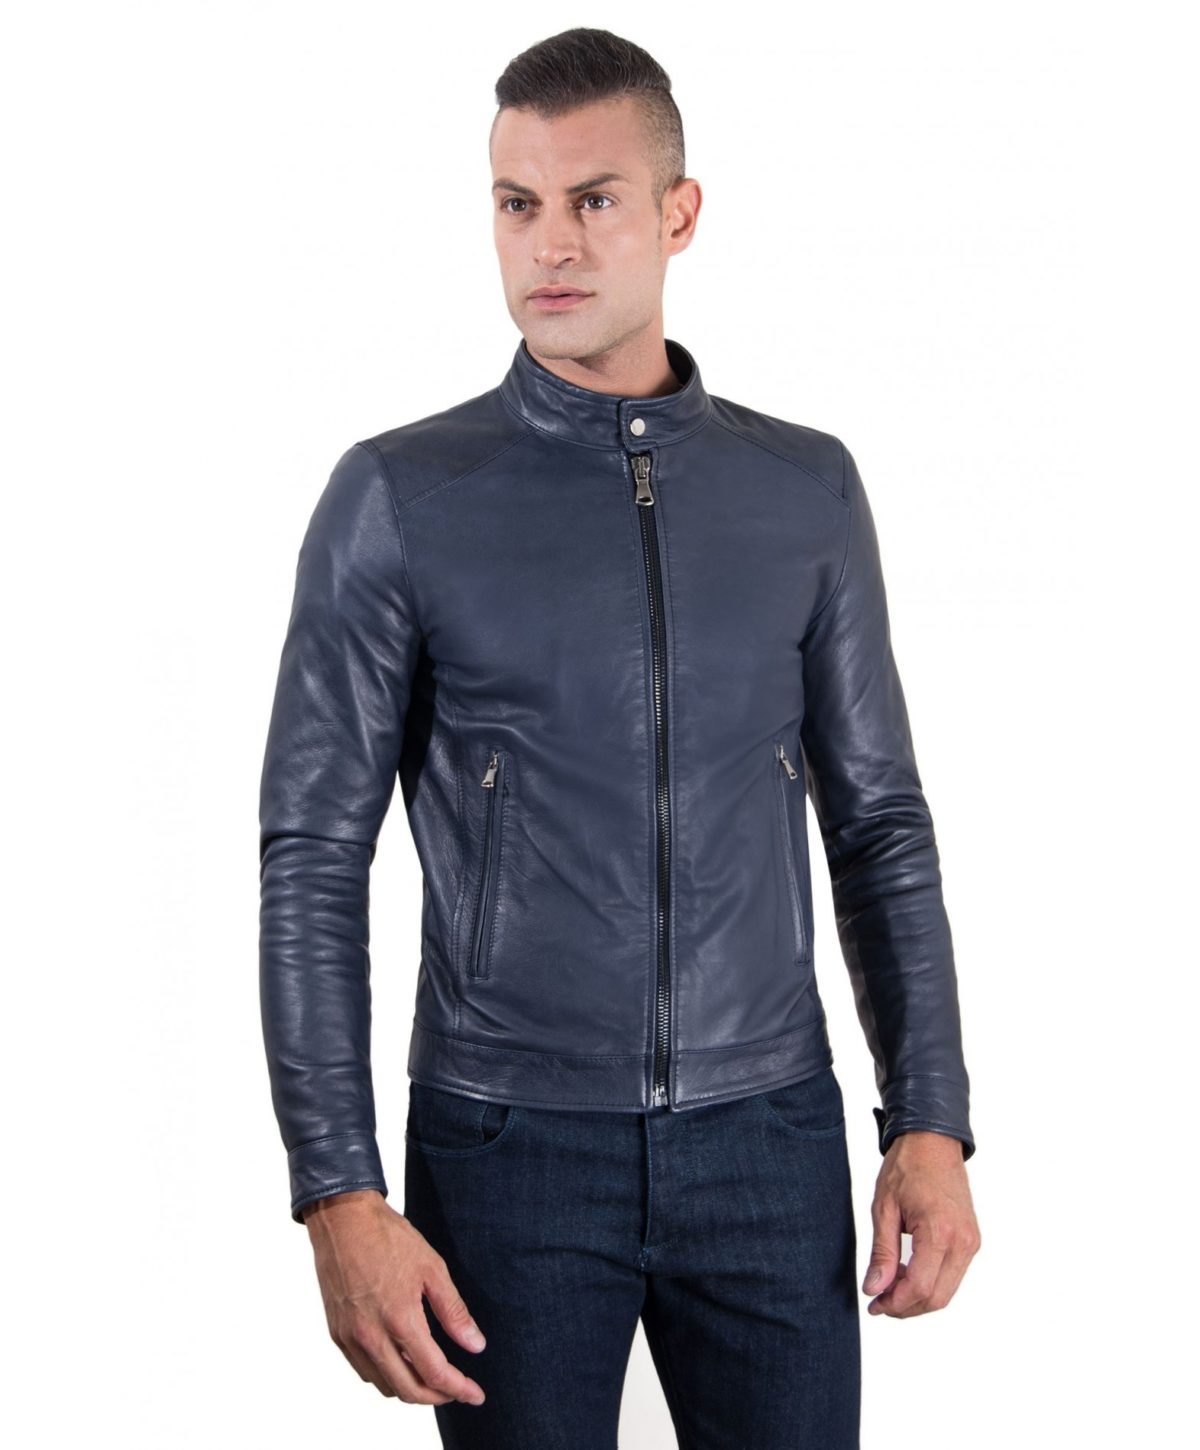 men-s-leather-jacket-korean-collar-two-pockets-blue-color-hamilton